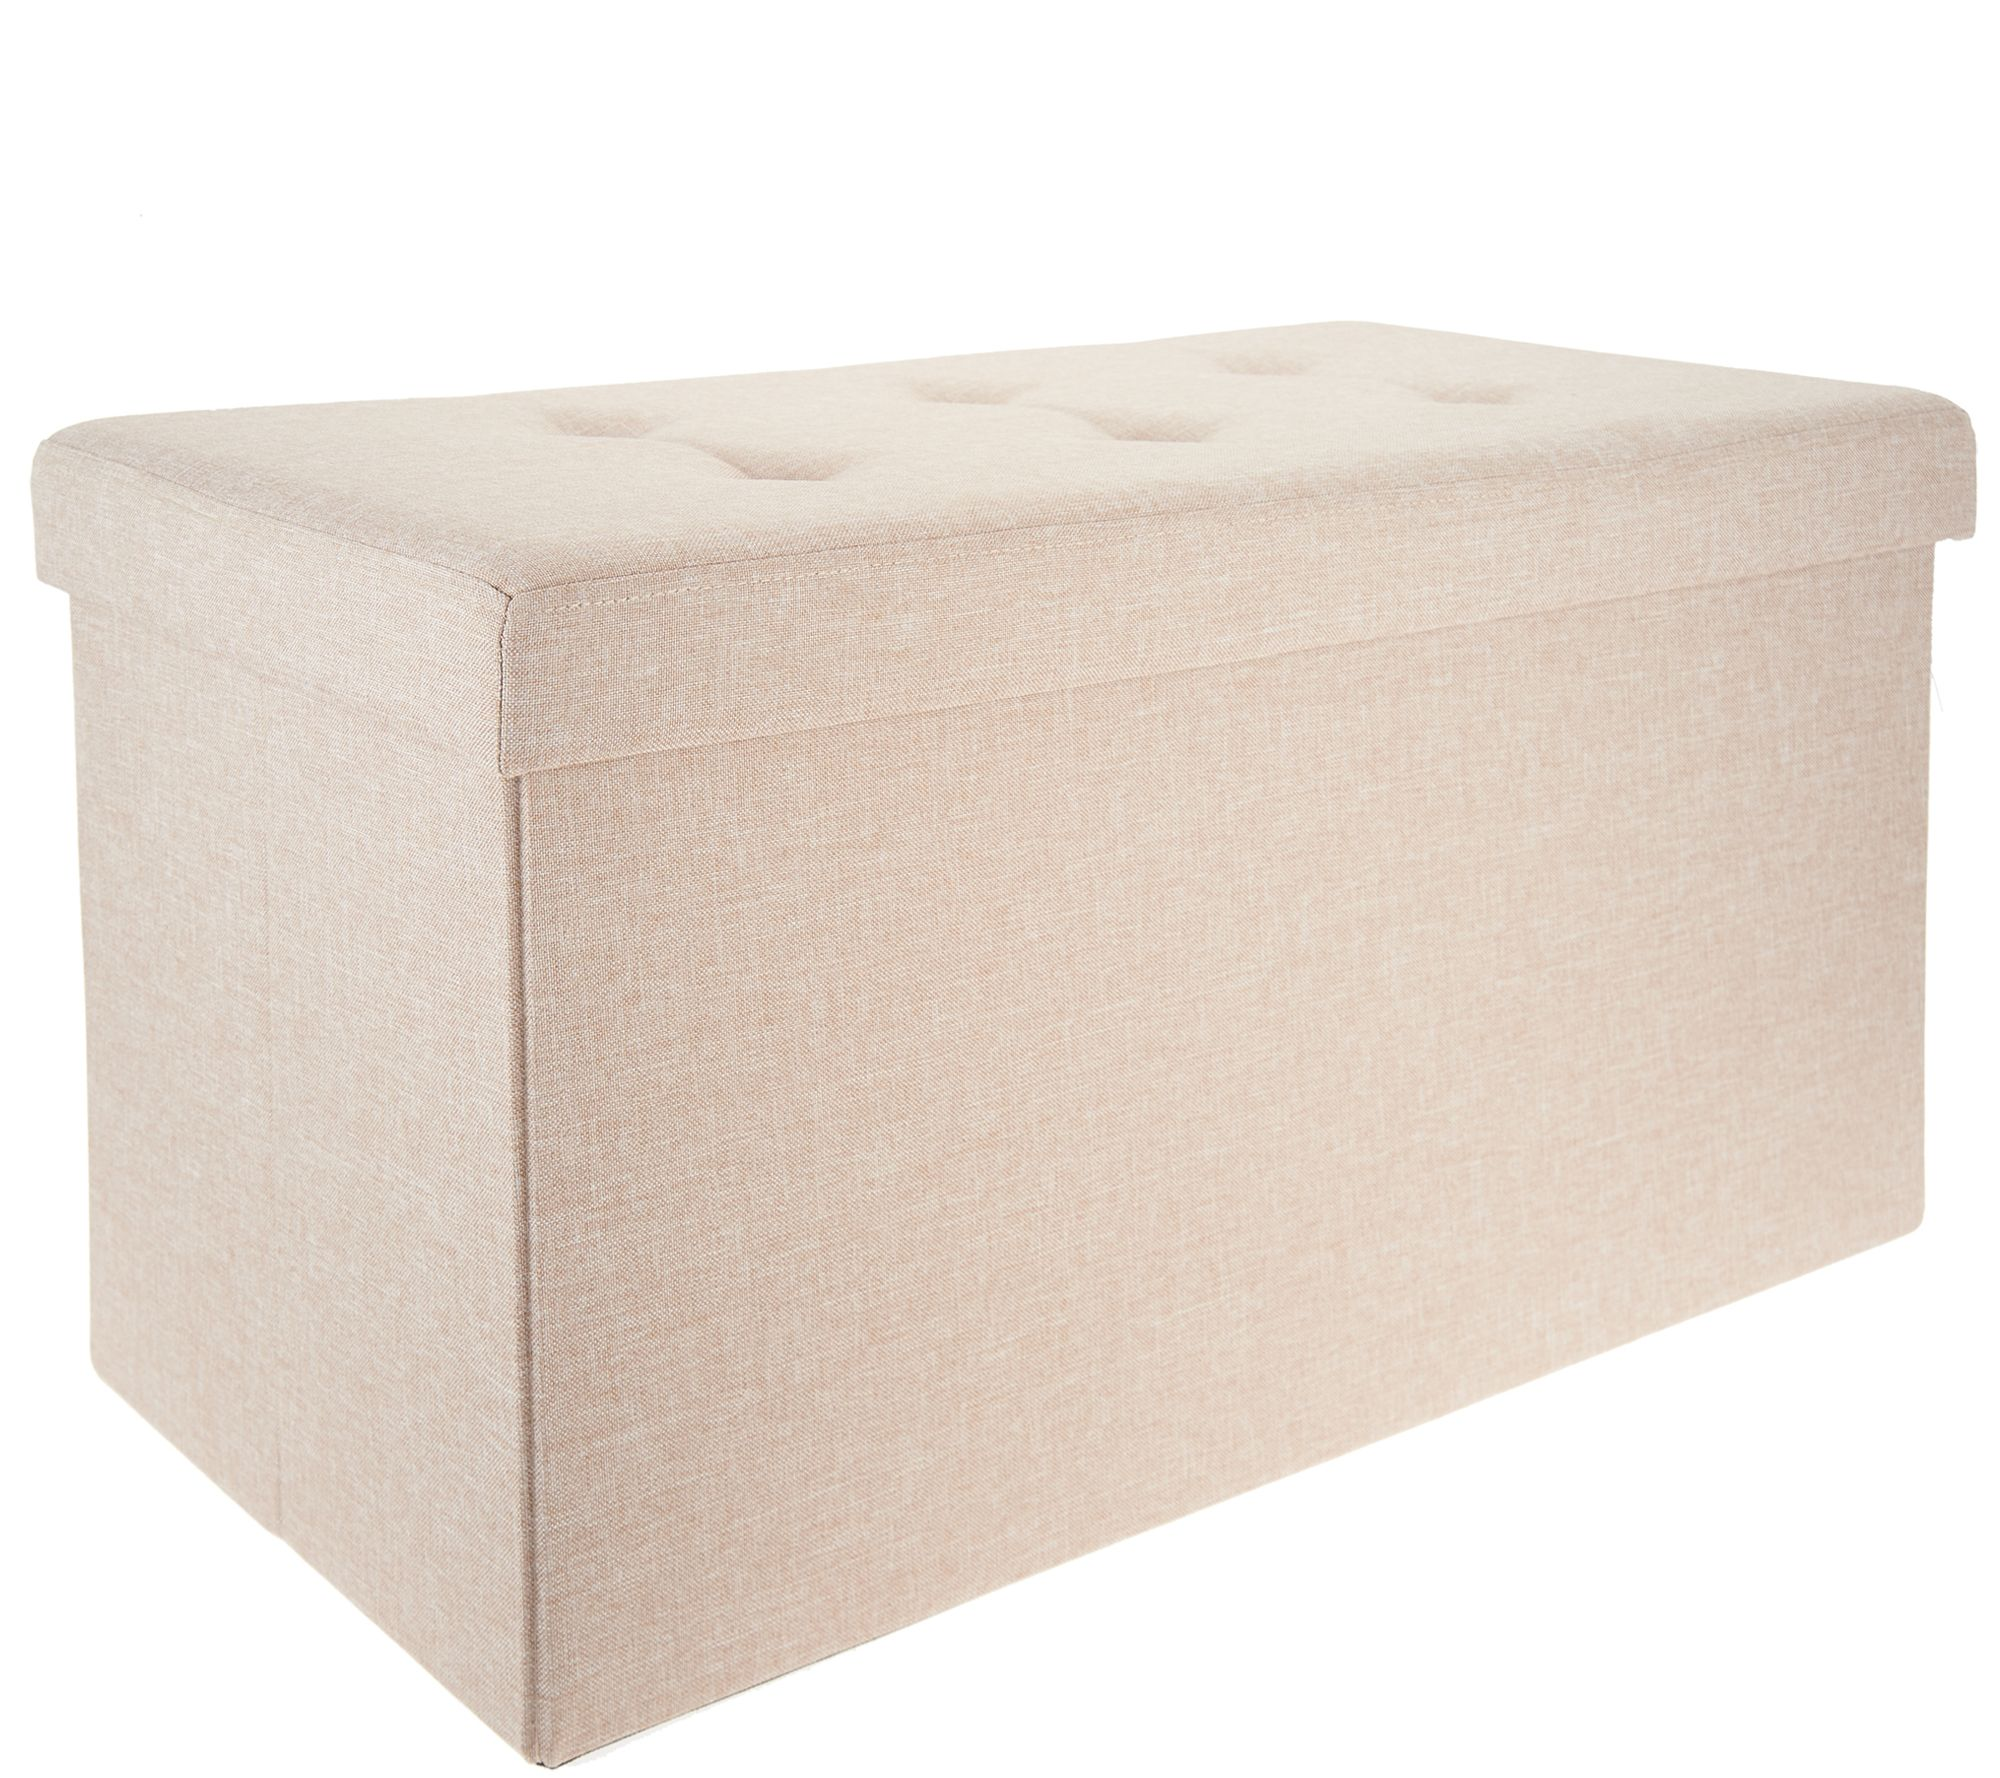 Strange Fresh Home Elements Tufted 30 Folding Storage Bench W Tray Qvc Com Andrewgaddart Wooden Chair Designs For Living Room Andrewgaddartcom